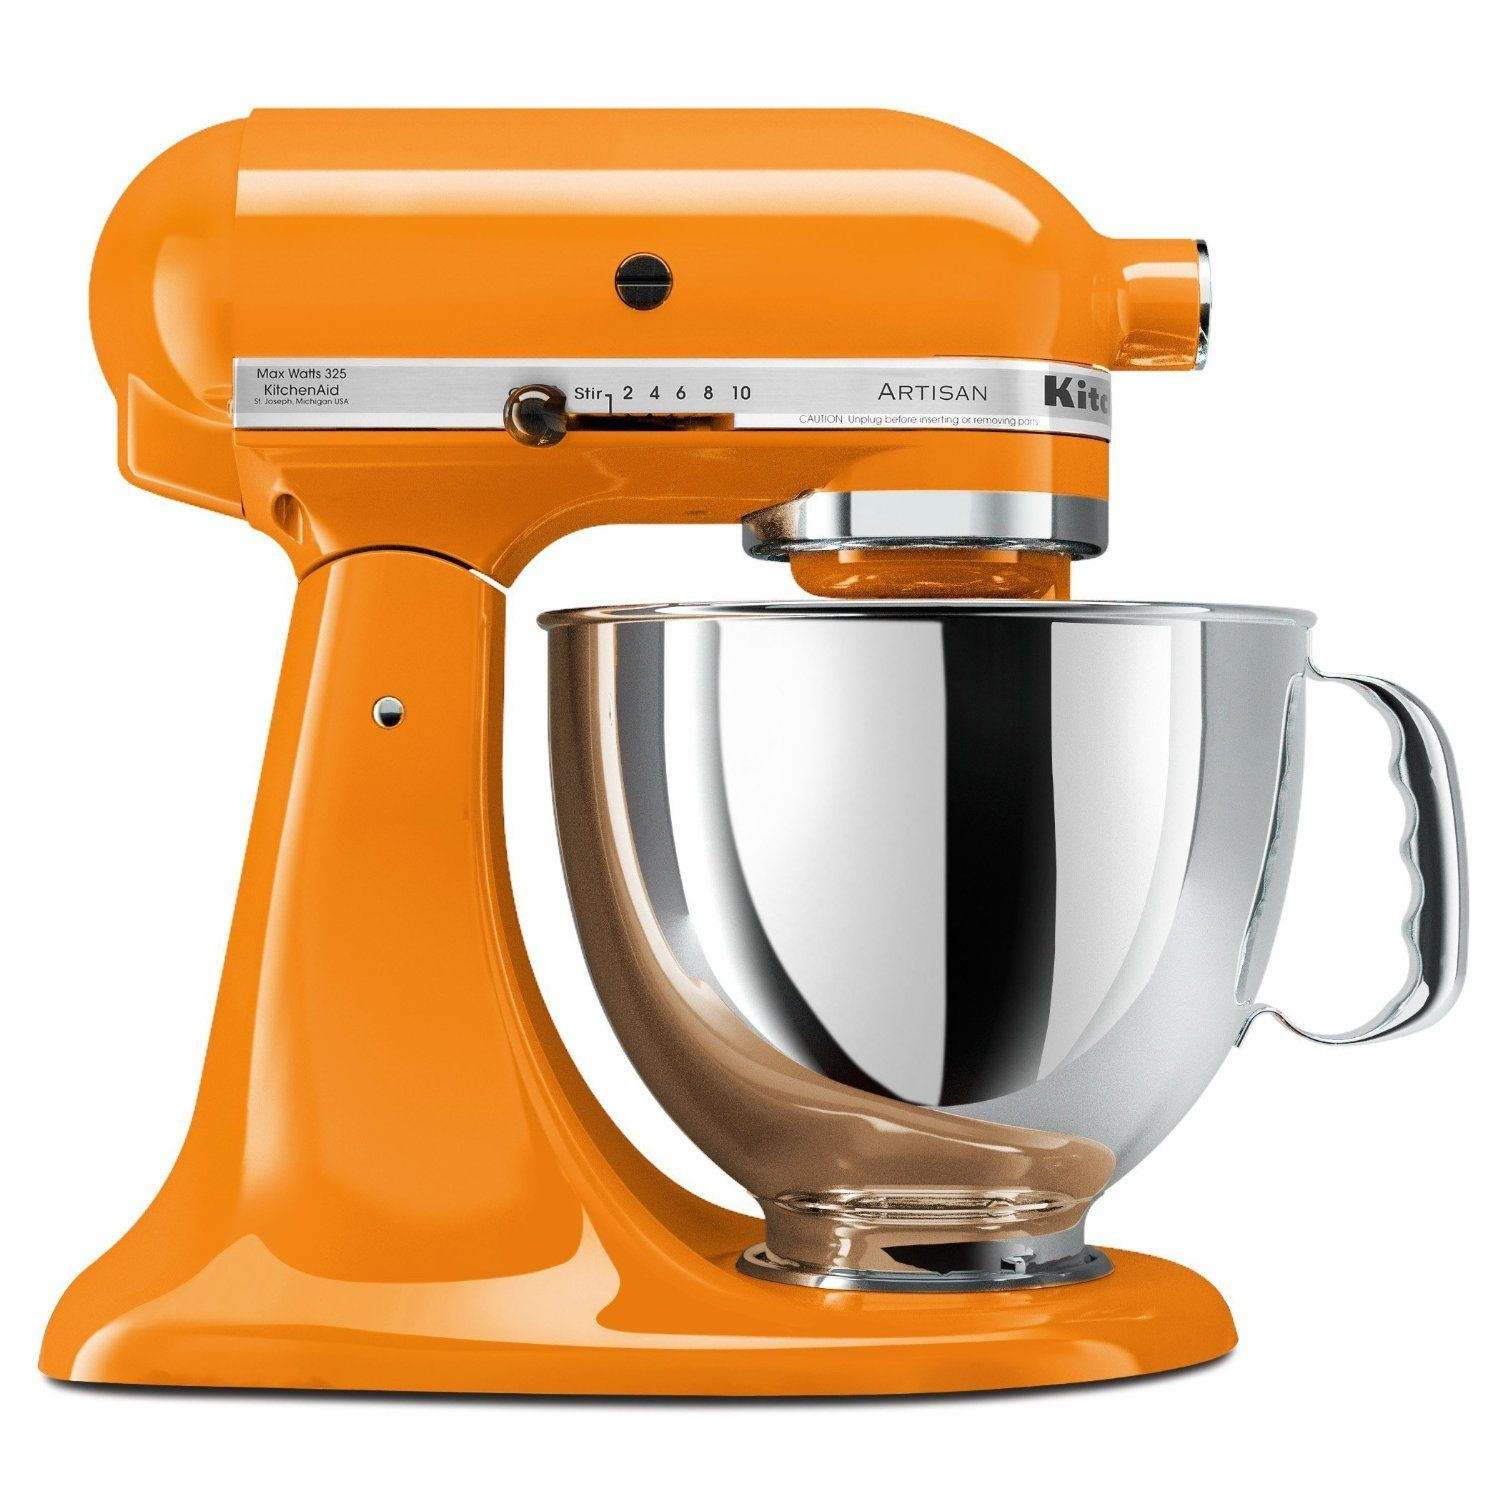 My Mom Bought Me This Tangerine Kitchen Aid As An Early Wedding Present